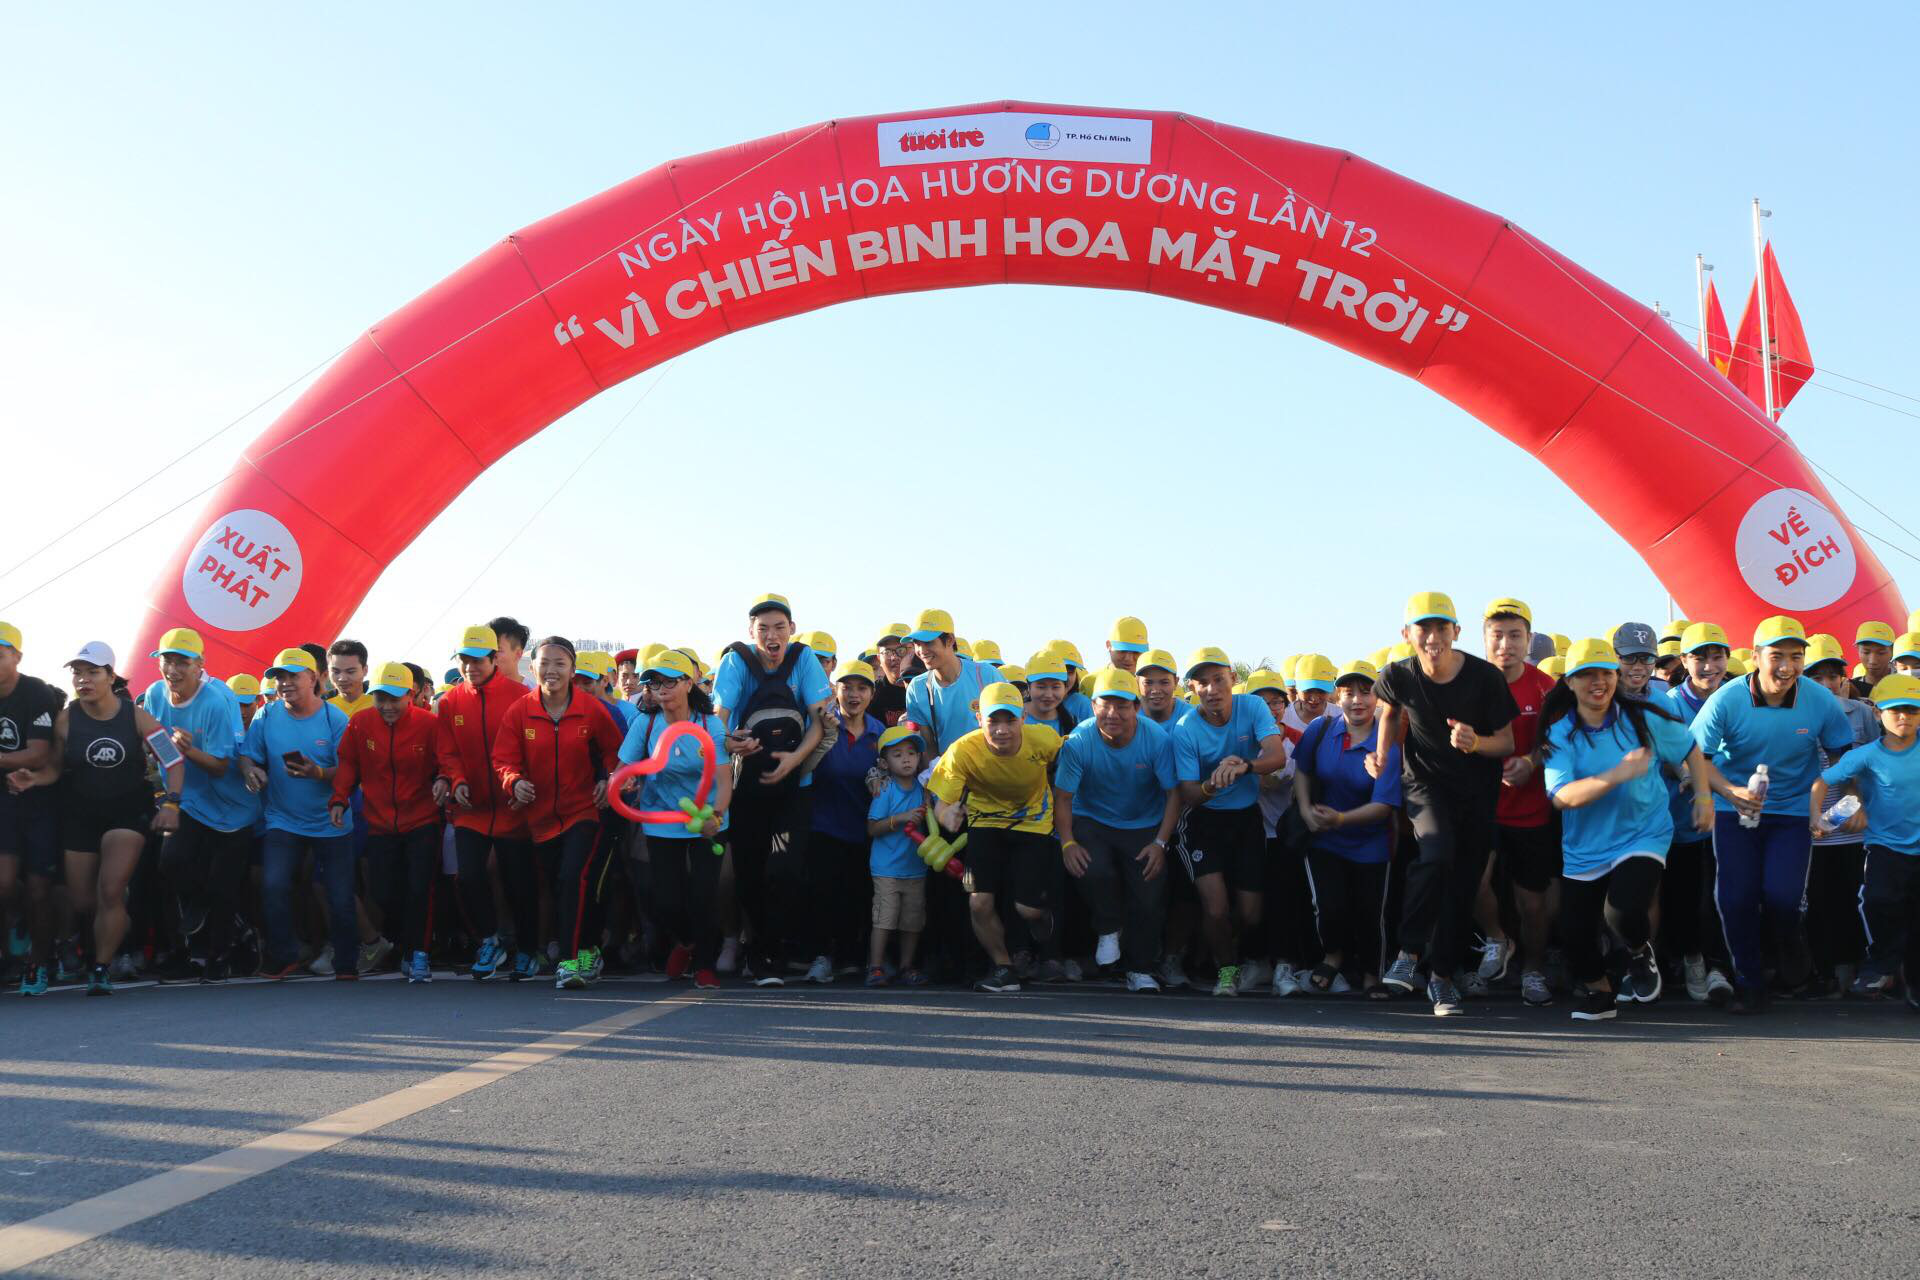 The charity run kicks off at 7:15 am. Photo: Hoang An / Tuoi Tre